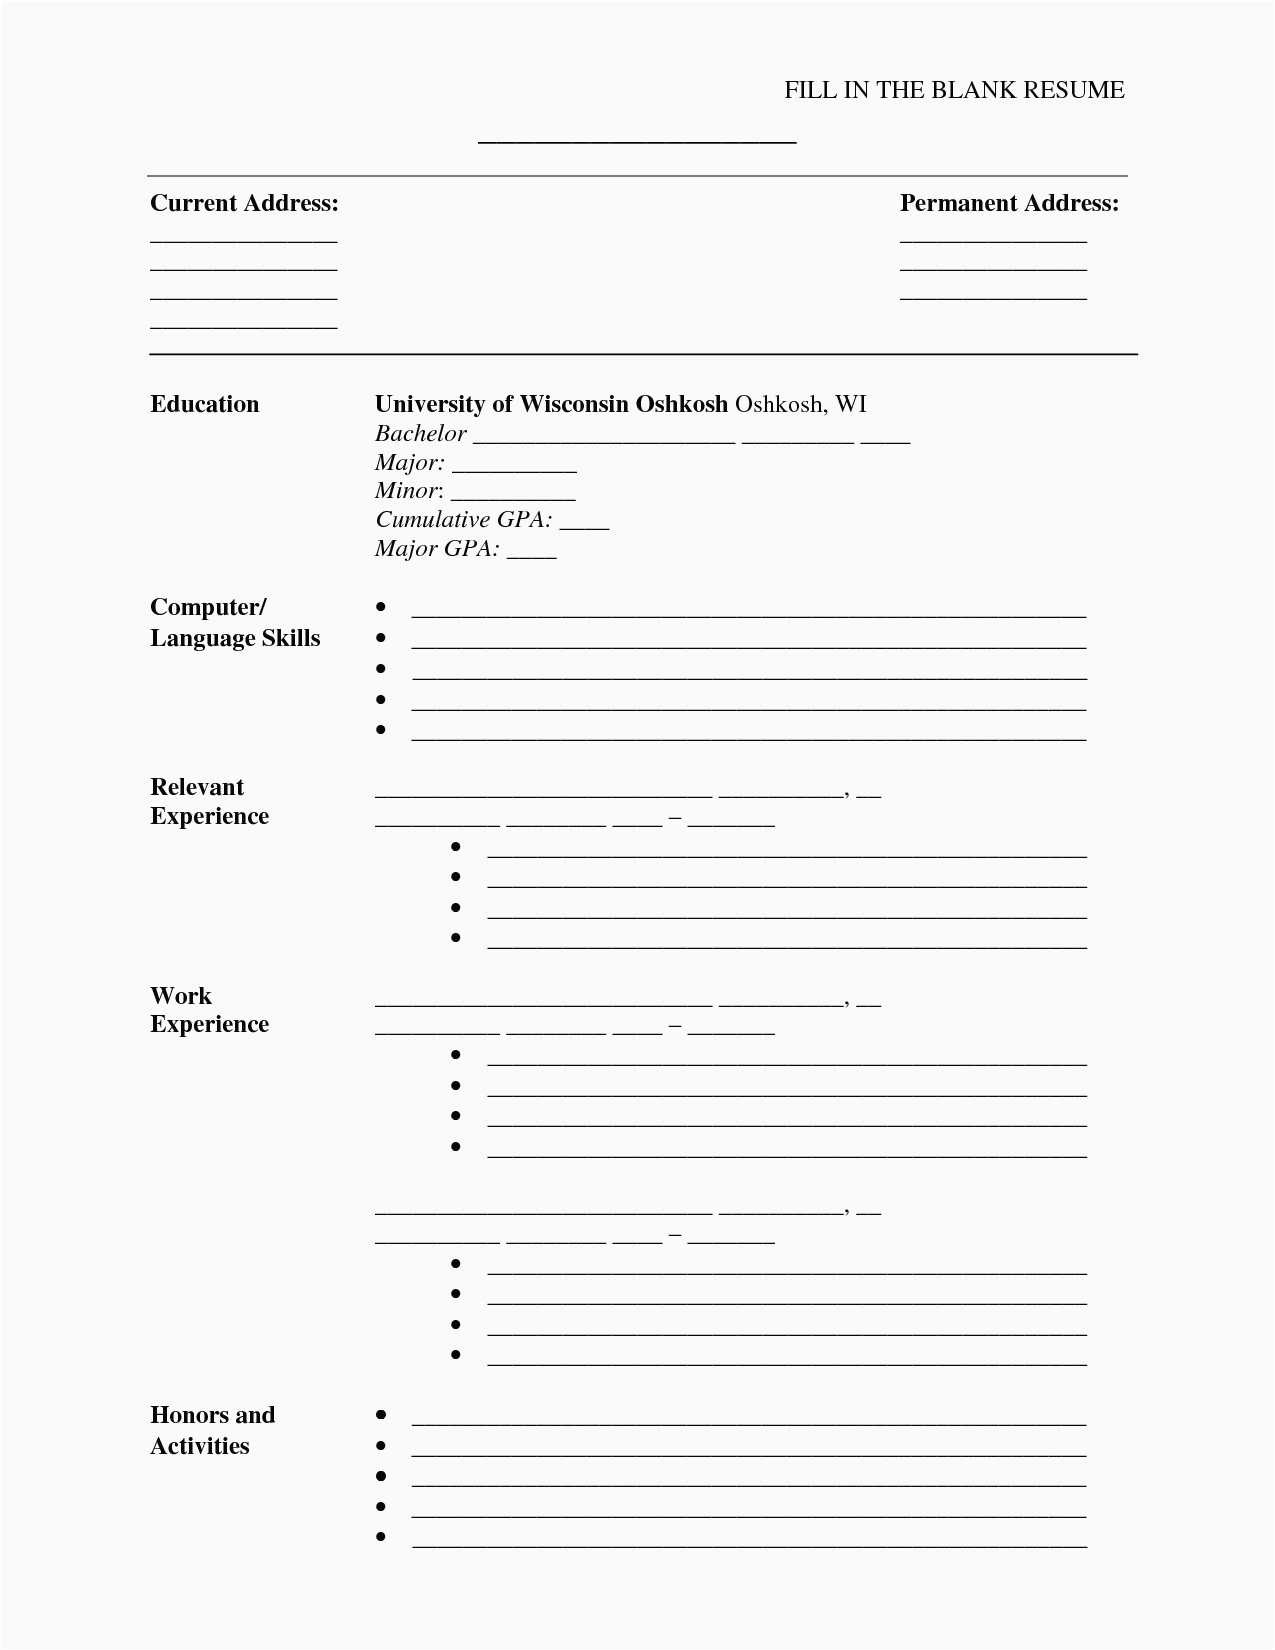 Free Printable Resume Template Inspirational 30 Free Microsoft Word - Free Printable Resume Templates Microsoft Word